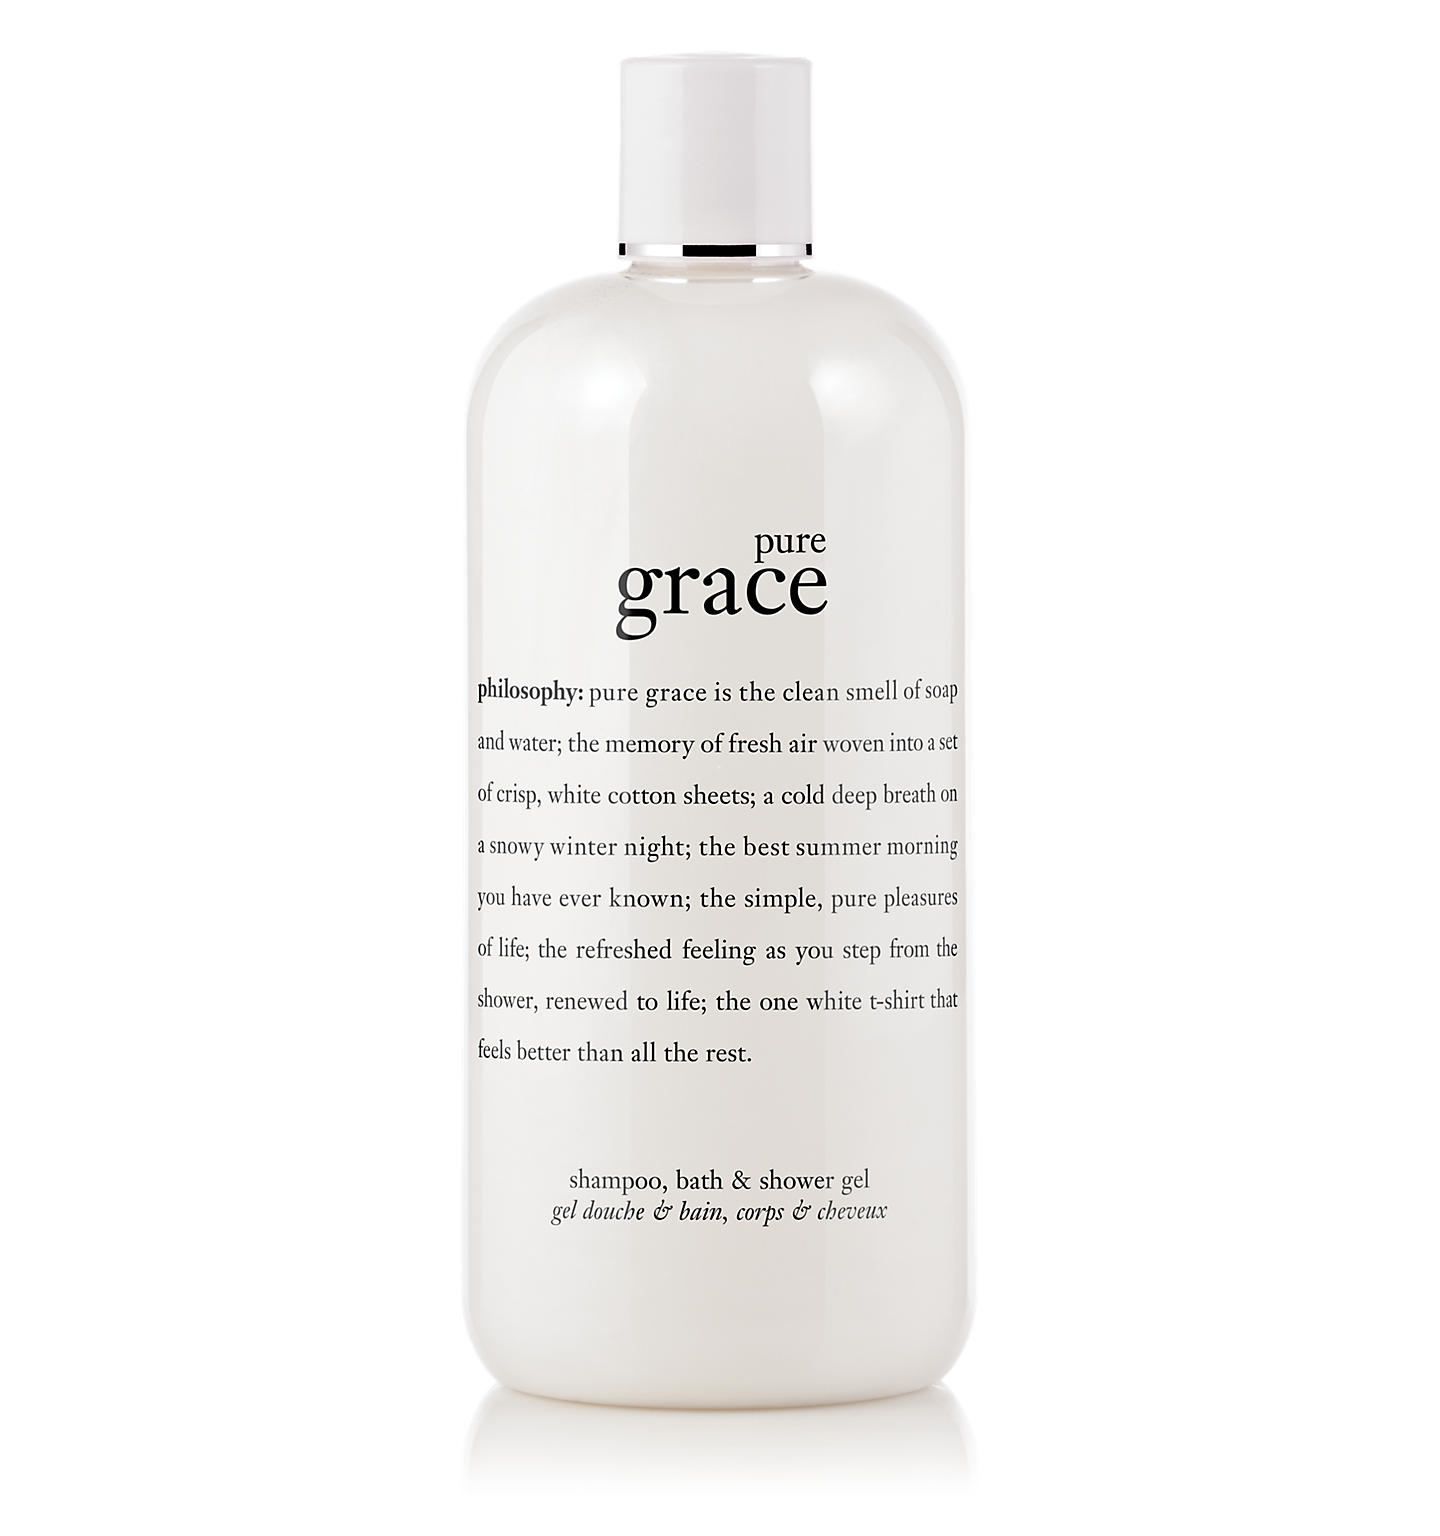 philosophy, pure grace 8oz shower gel